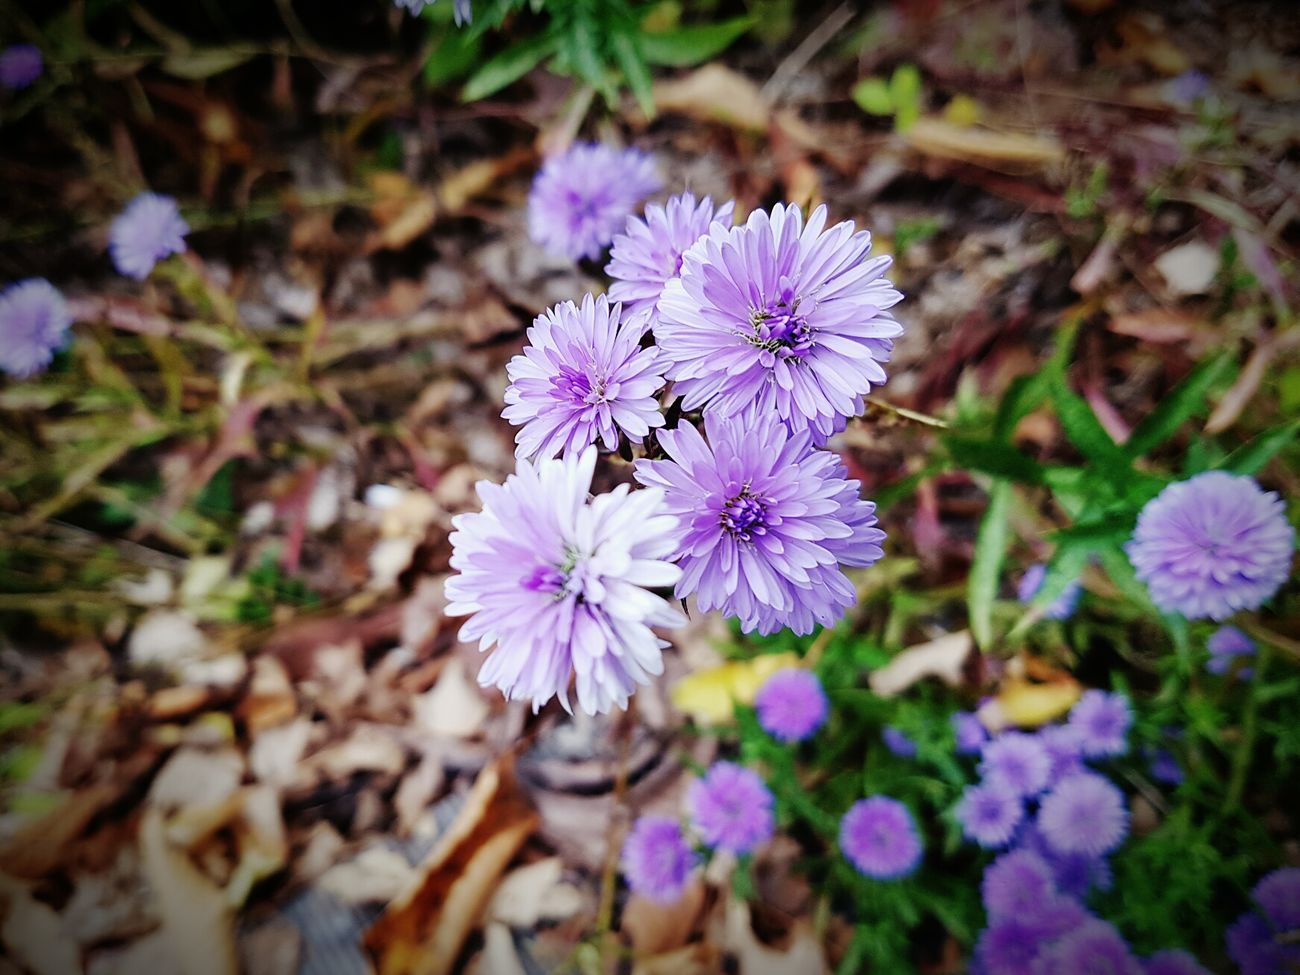 Purple Flower Nature Beauty In Nature Freshness Fragility Plant Growth Flower Head Blooming Close-up Outdoors Day No People Eyem Nature Lovers  Petal Taking Photos Check This Out Getting Inspired Focus On Foreground Beauty In Nature Freshness Nature